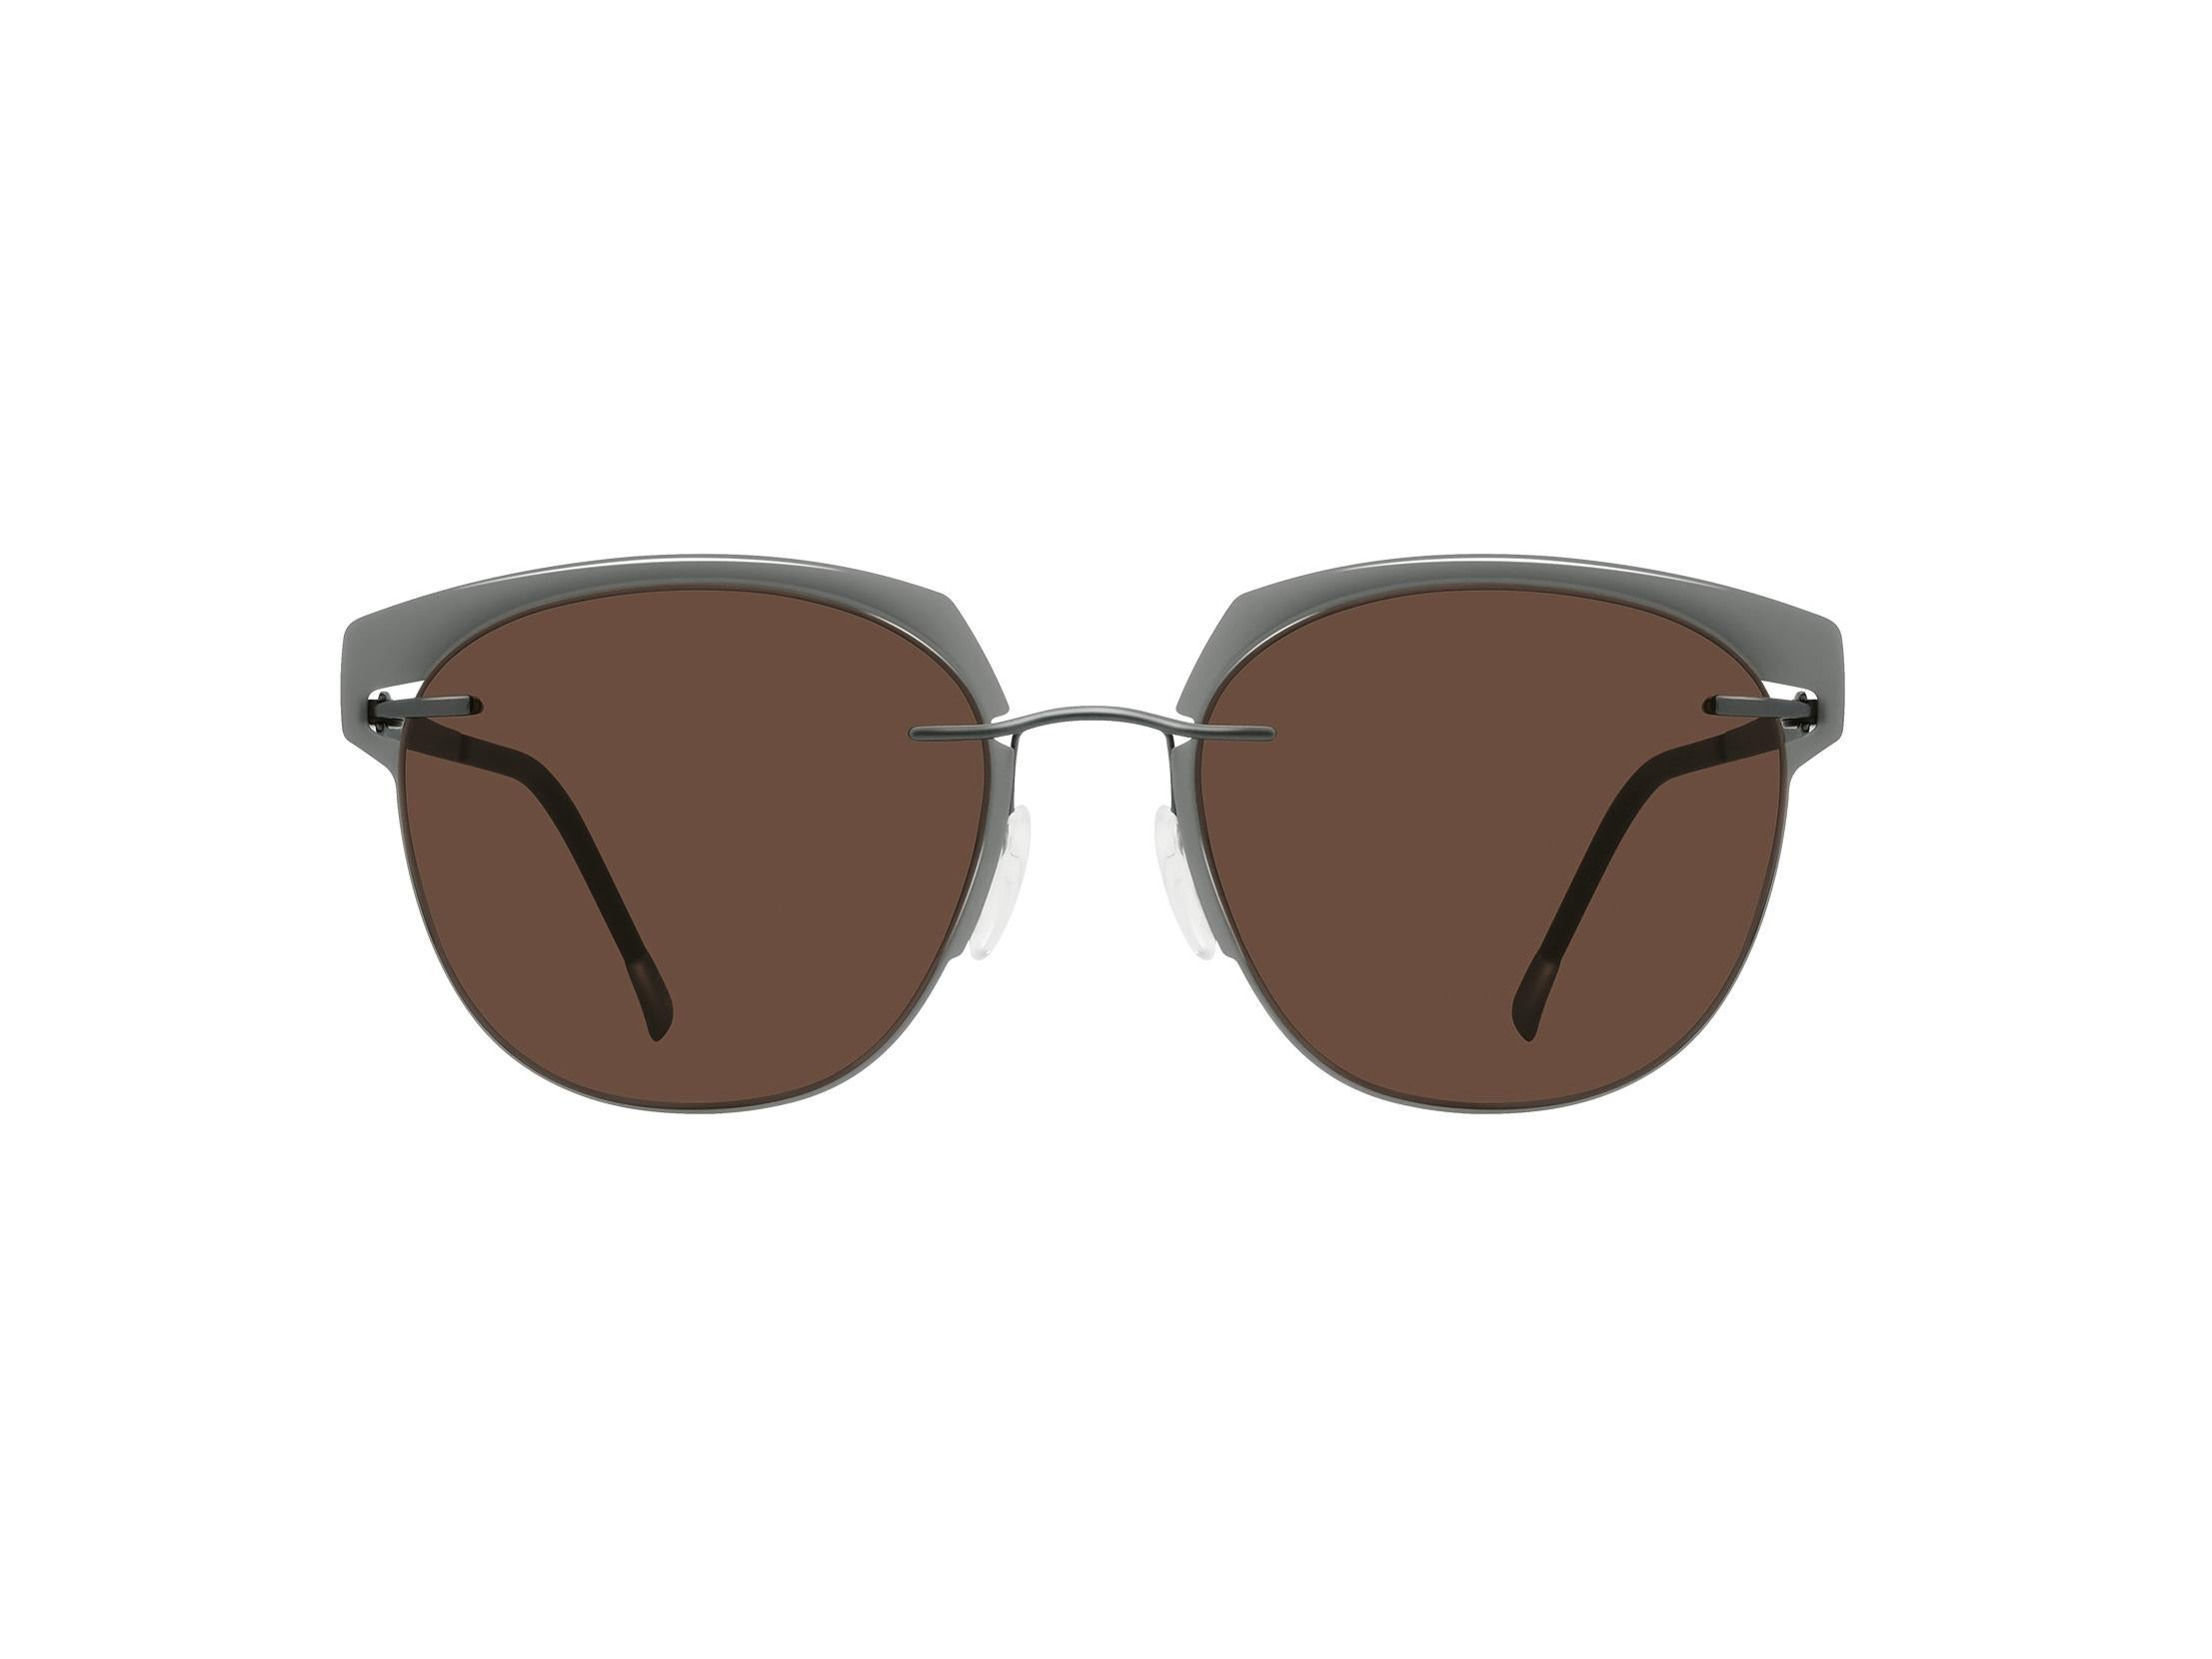 6c8dca79e 10 best men's sunglasses to invest in this summer | The Independent